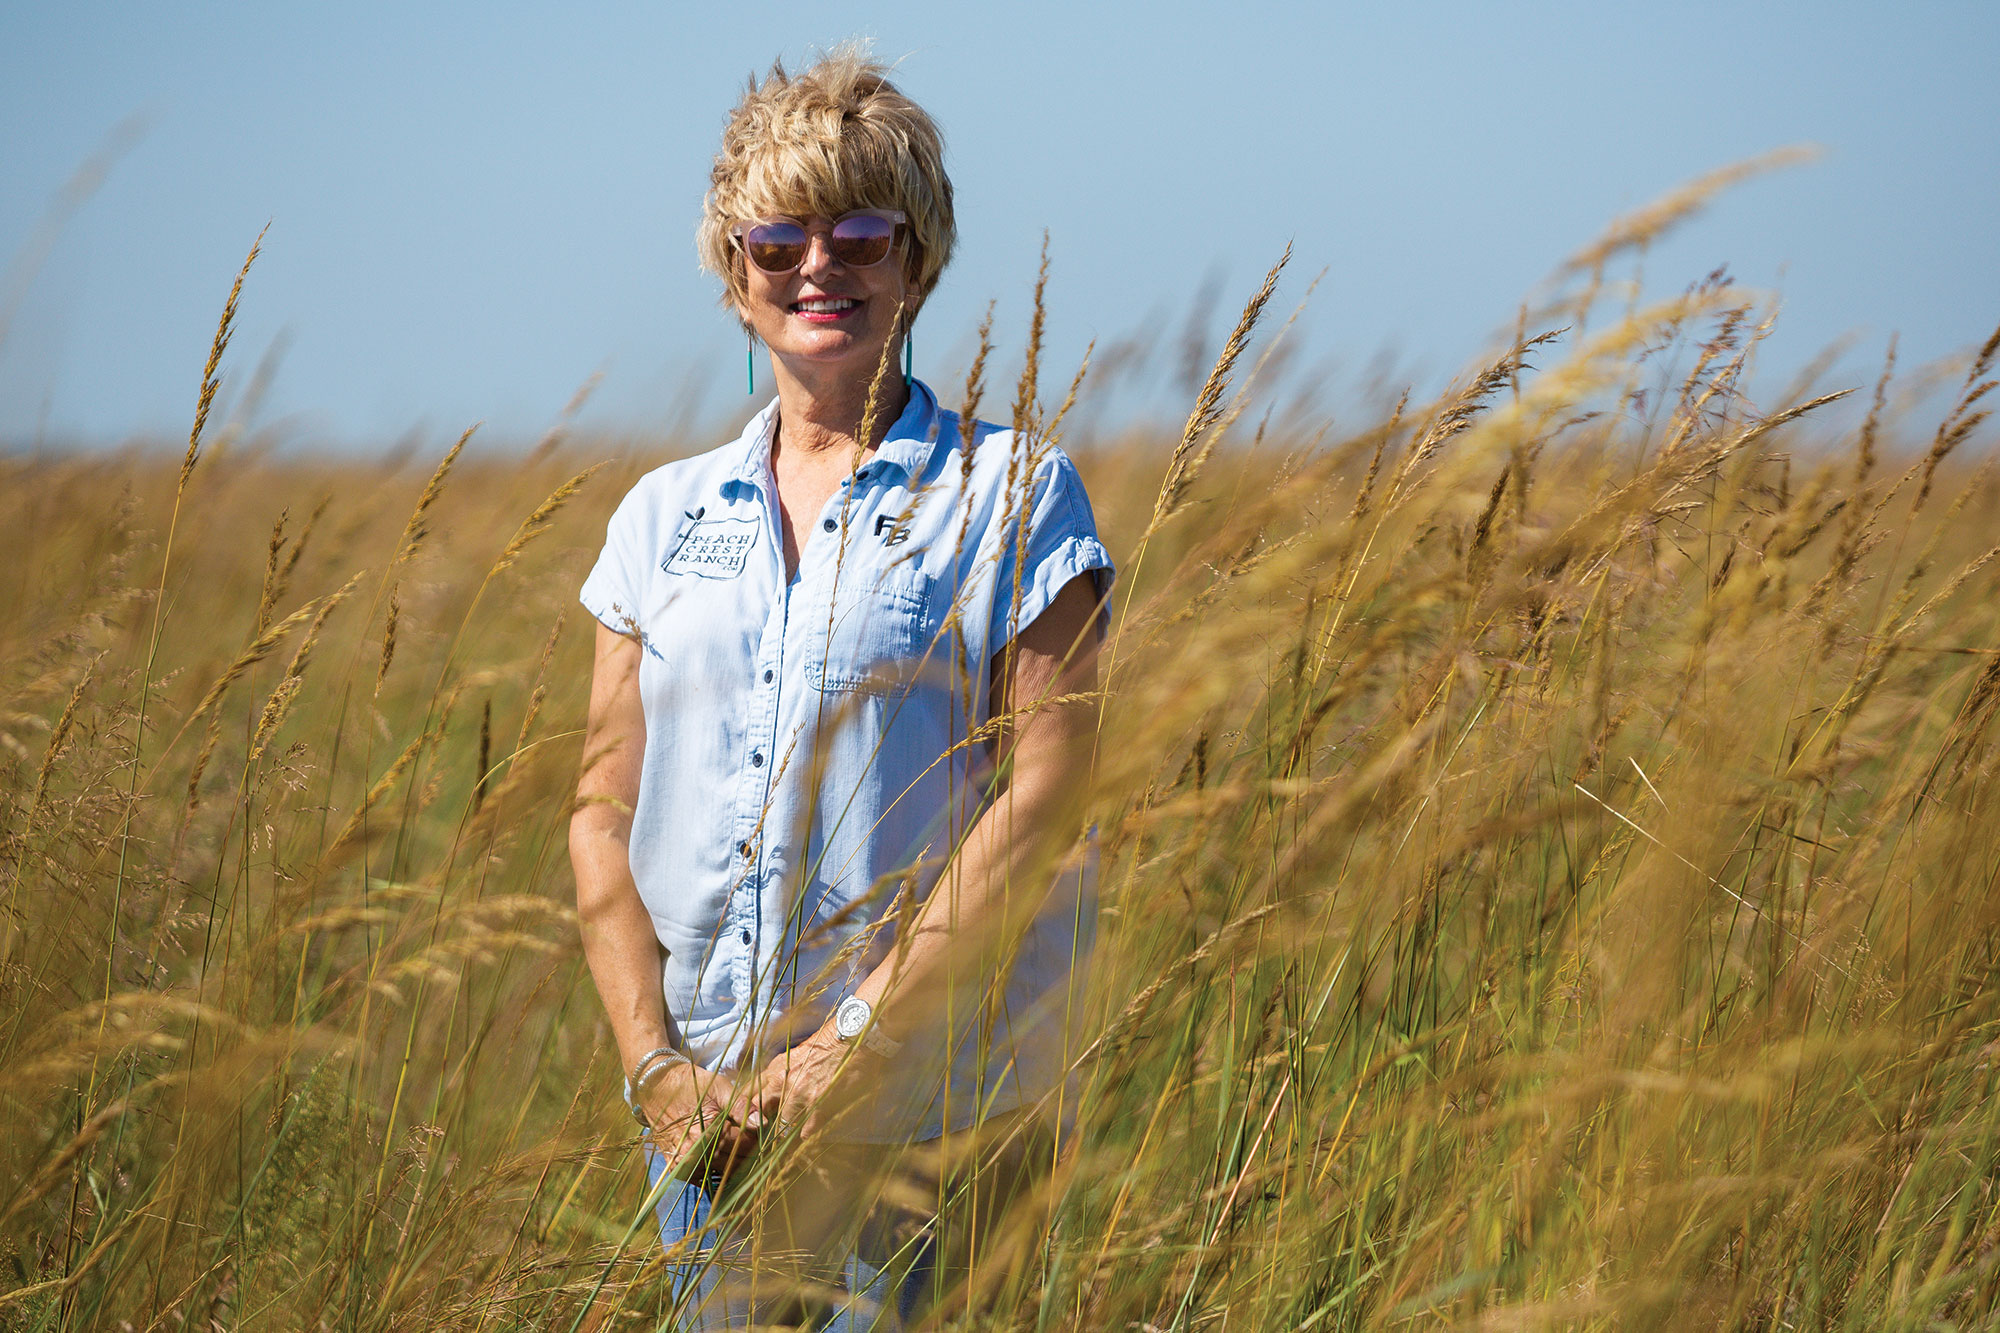 Susan Bergen focuses on building soil health and improving the land on her ranch in Sulphur, Oklahoma.